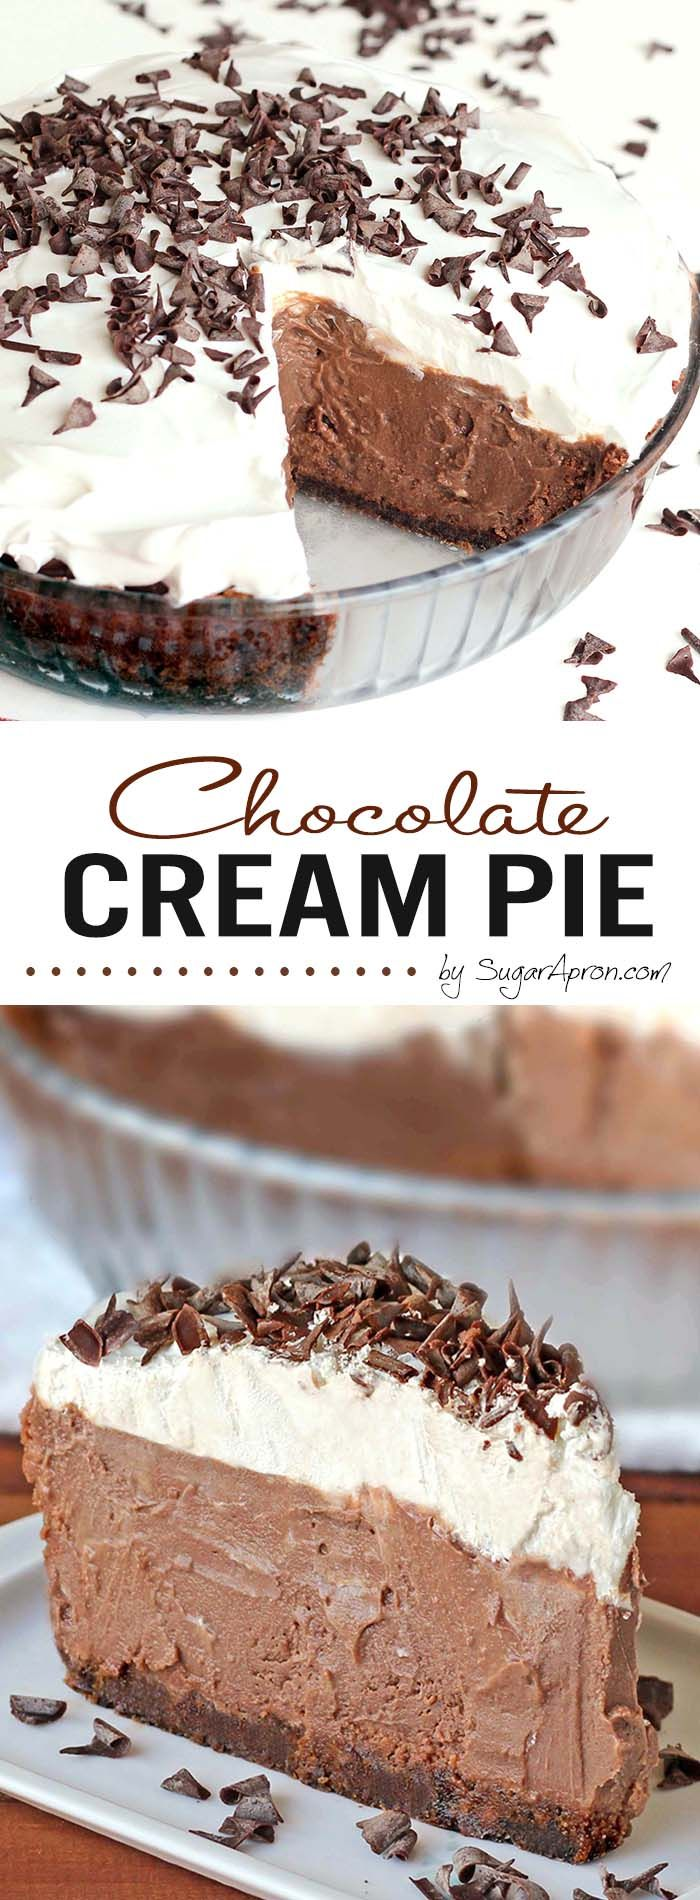 Check out Chocolate Cream Pie. It's so easy to make!   Chocolate ...